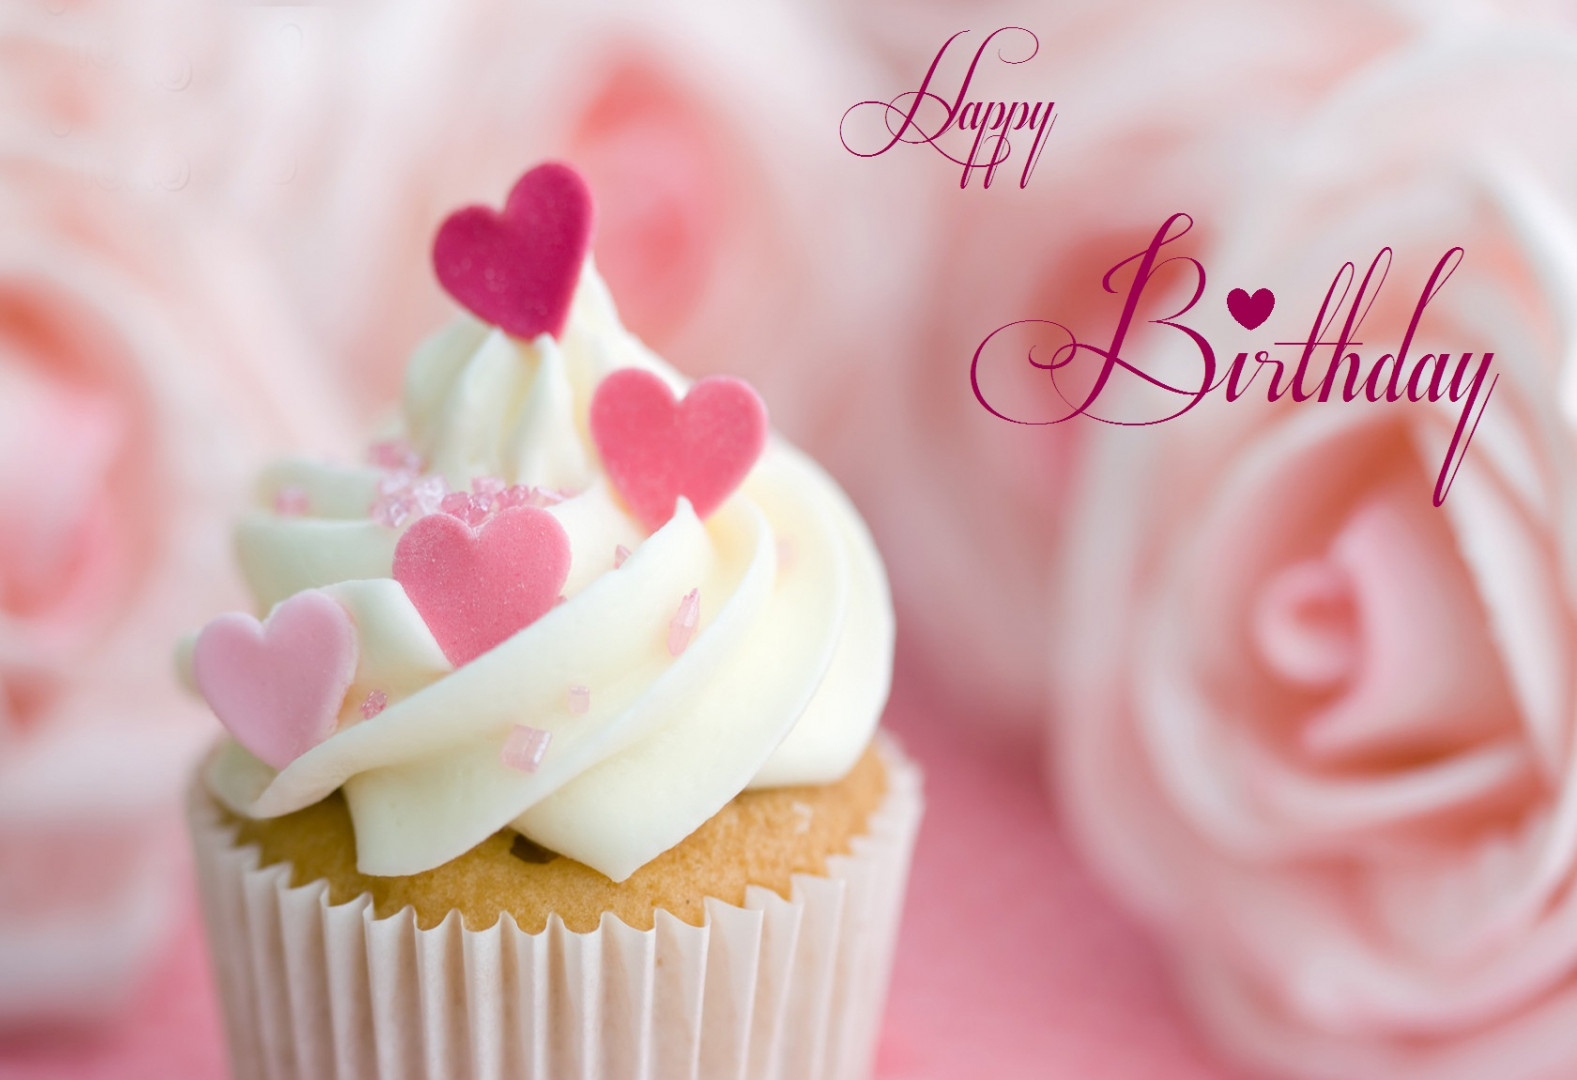 happy birthday wish picture download ; luxury-you-can-happy-birthday-wishes-wallpaper-in-your-of-happy-birthday-wish-image-download